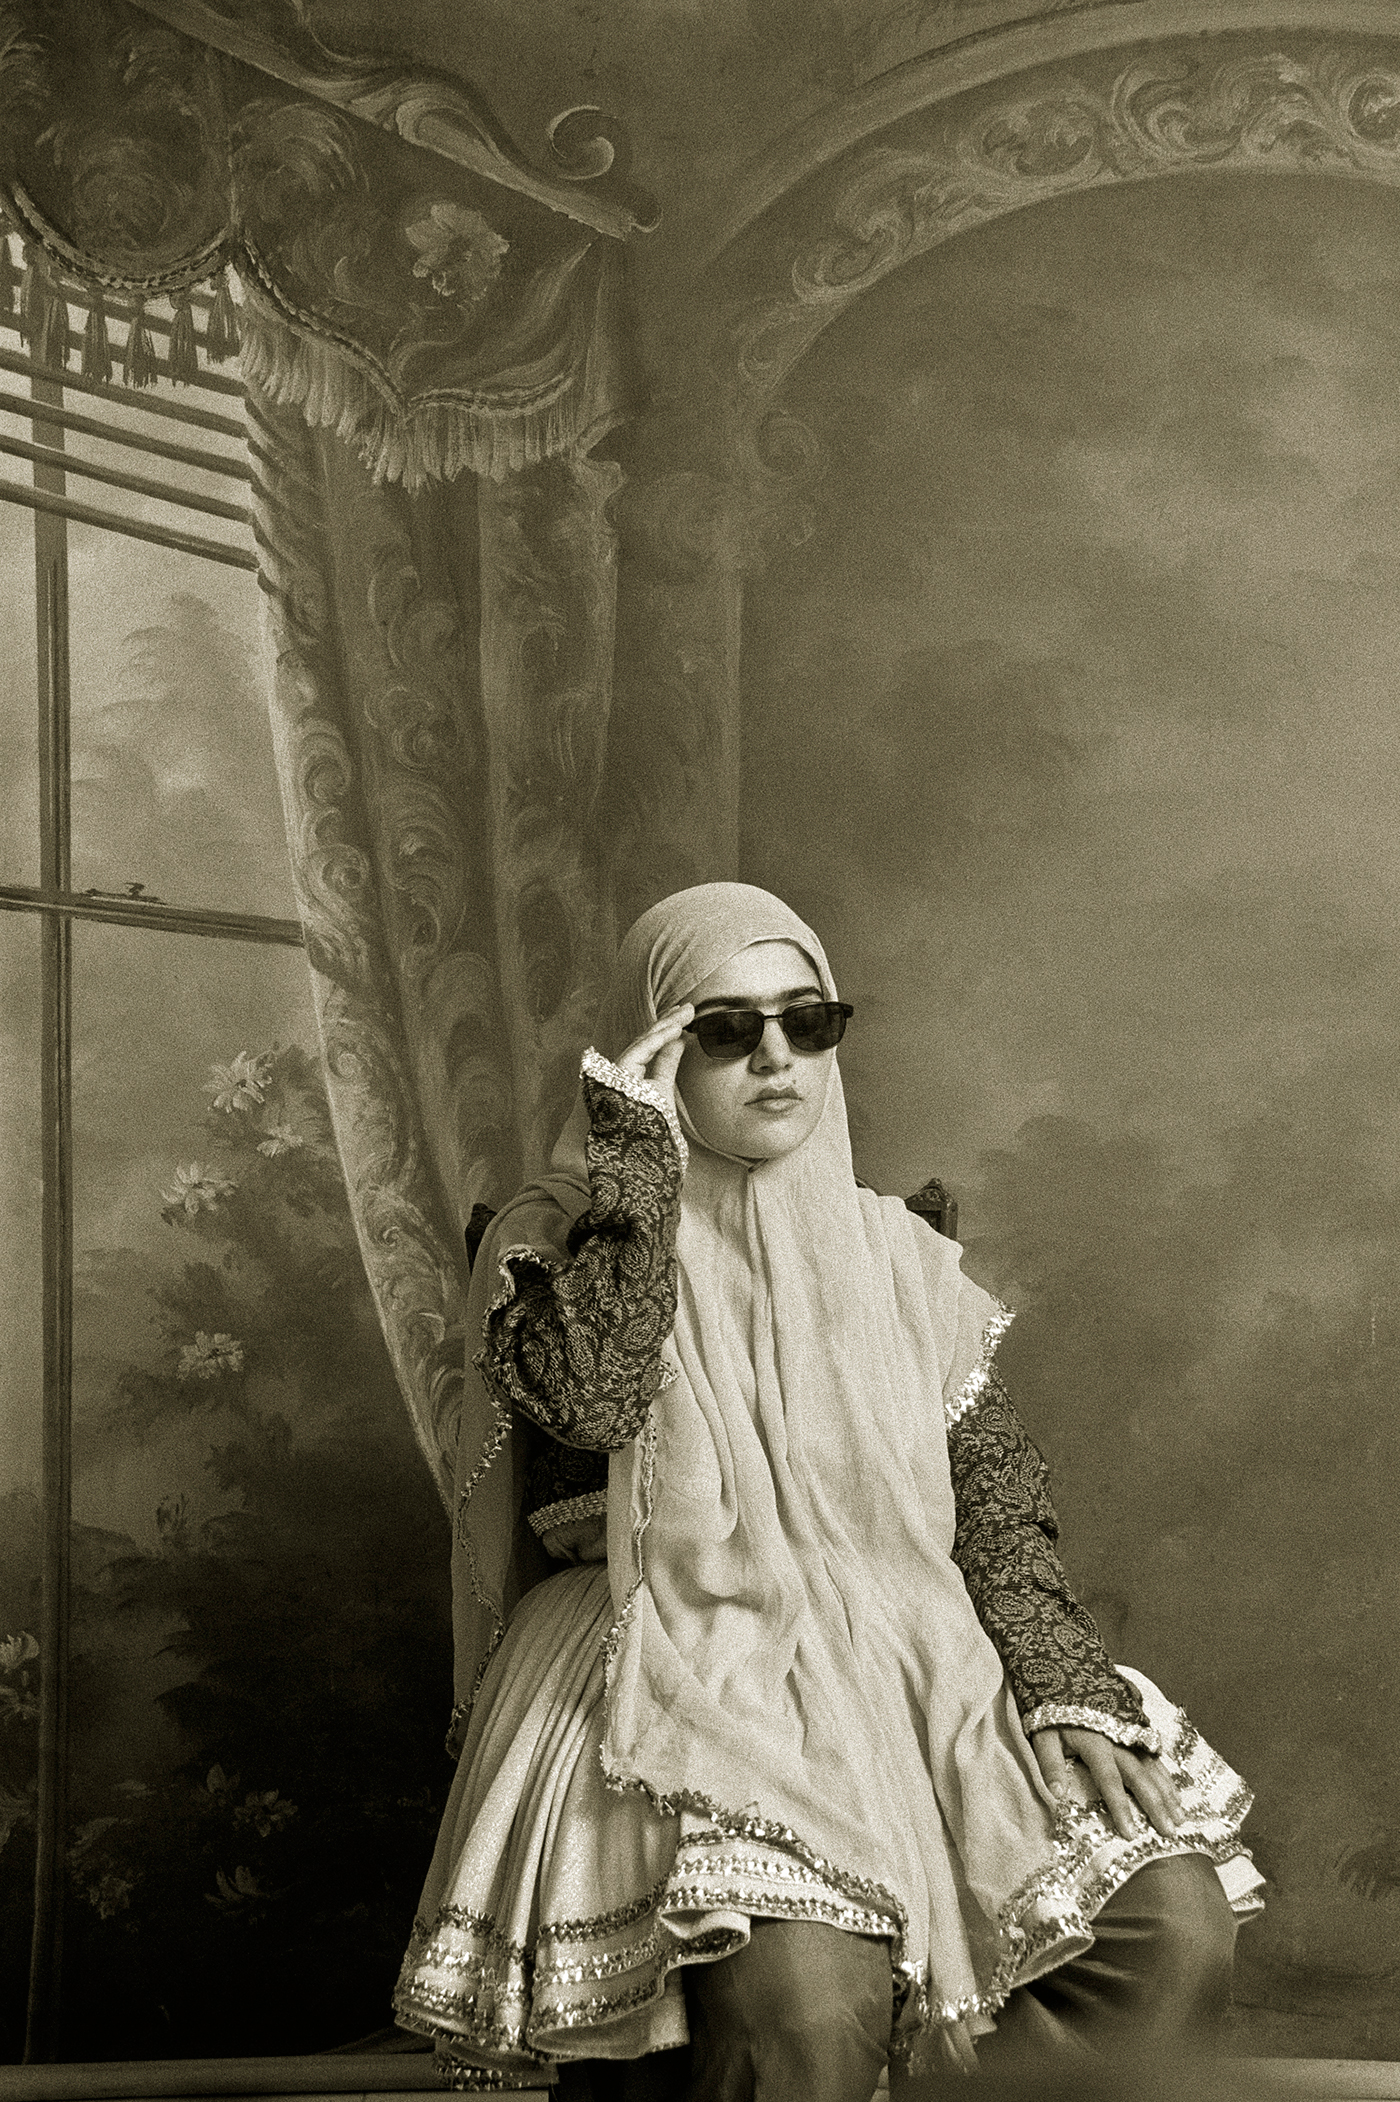 Shadi Ghadirian, wntitled, from the series 'Qajar' (1998), gelatin silver print, 15 3/4 x 11 7/8 in, Museum of Fine Arts, Boston, Museum purchase with the Horace W. Goldsmith Fund for Photography and Abbott Lawrence Fund (© Shadi Ghadirian, photo © 2015 Museum of Fine Arts, Boston)